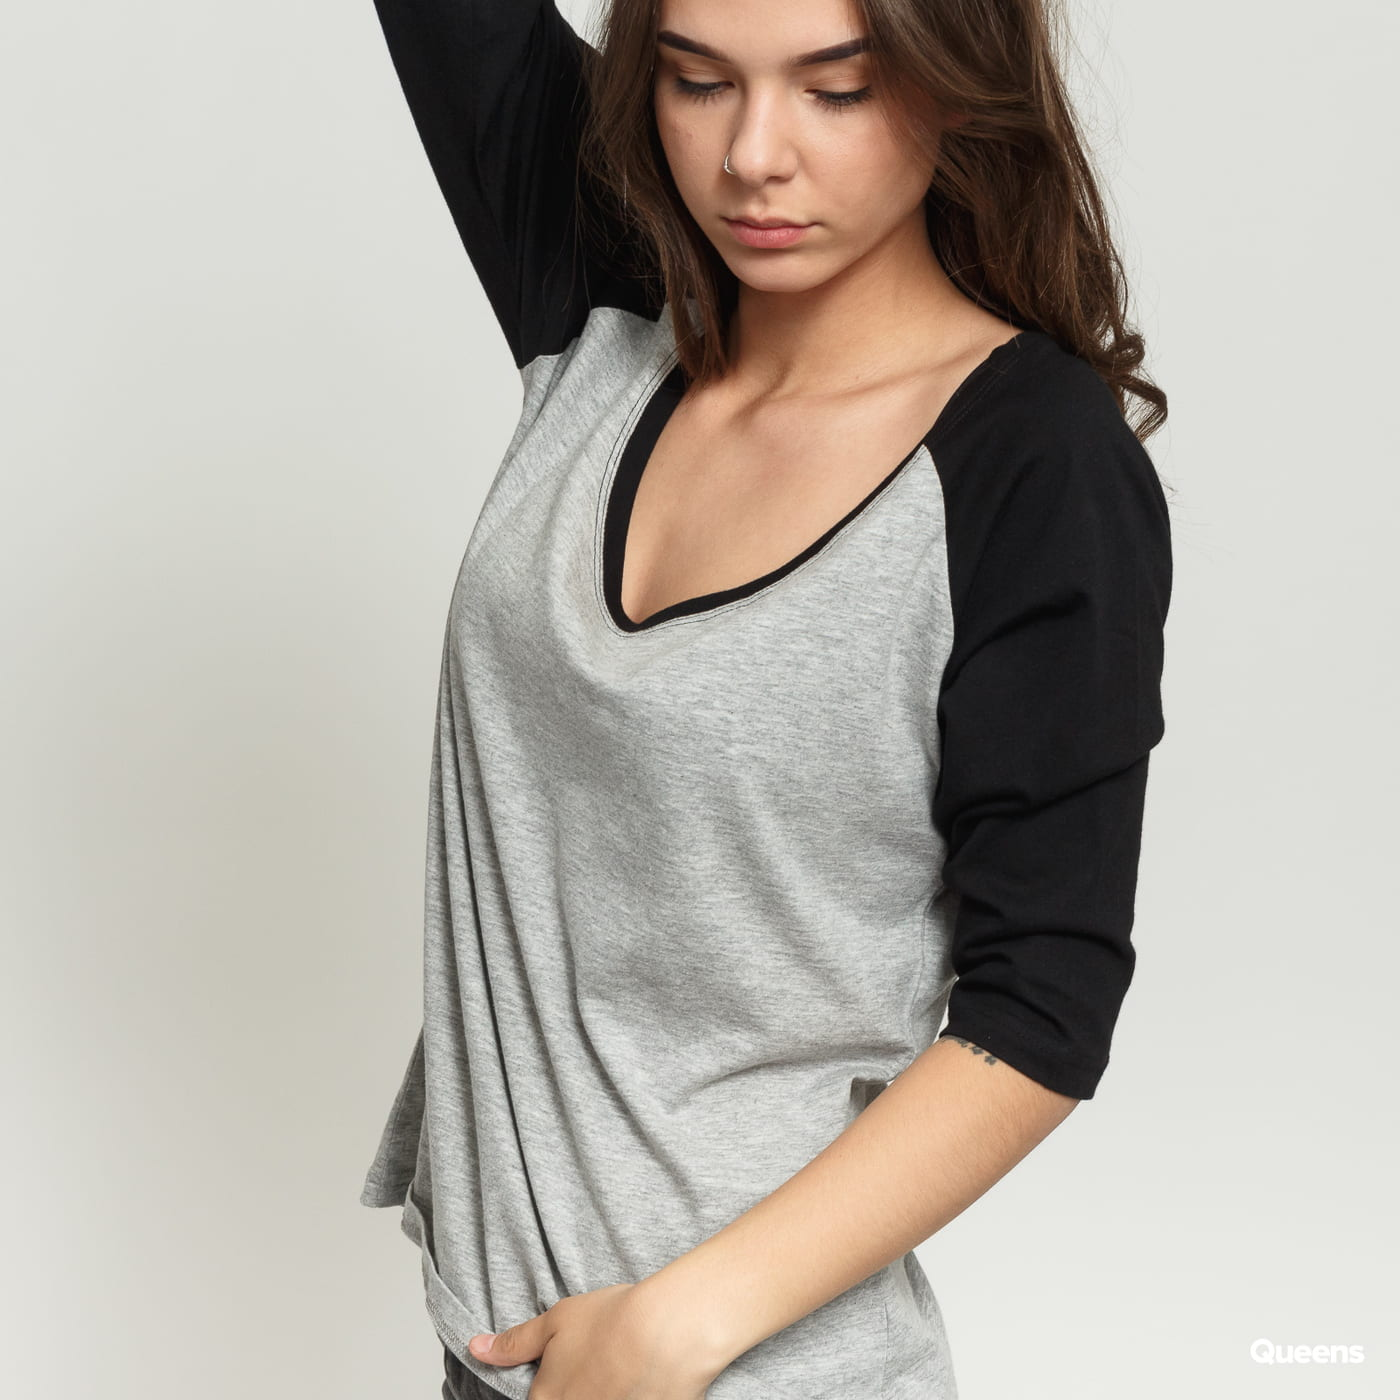 Urban Classics Ladies 3/4 Contrast Raglan melange gray / black